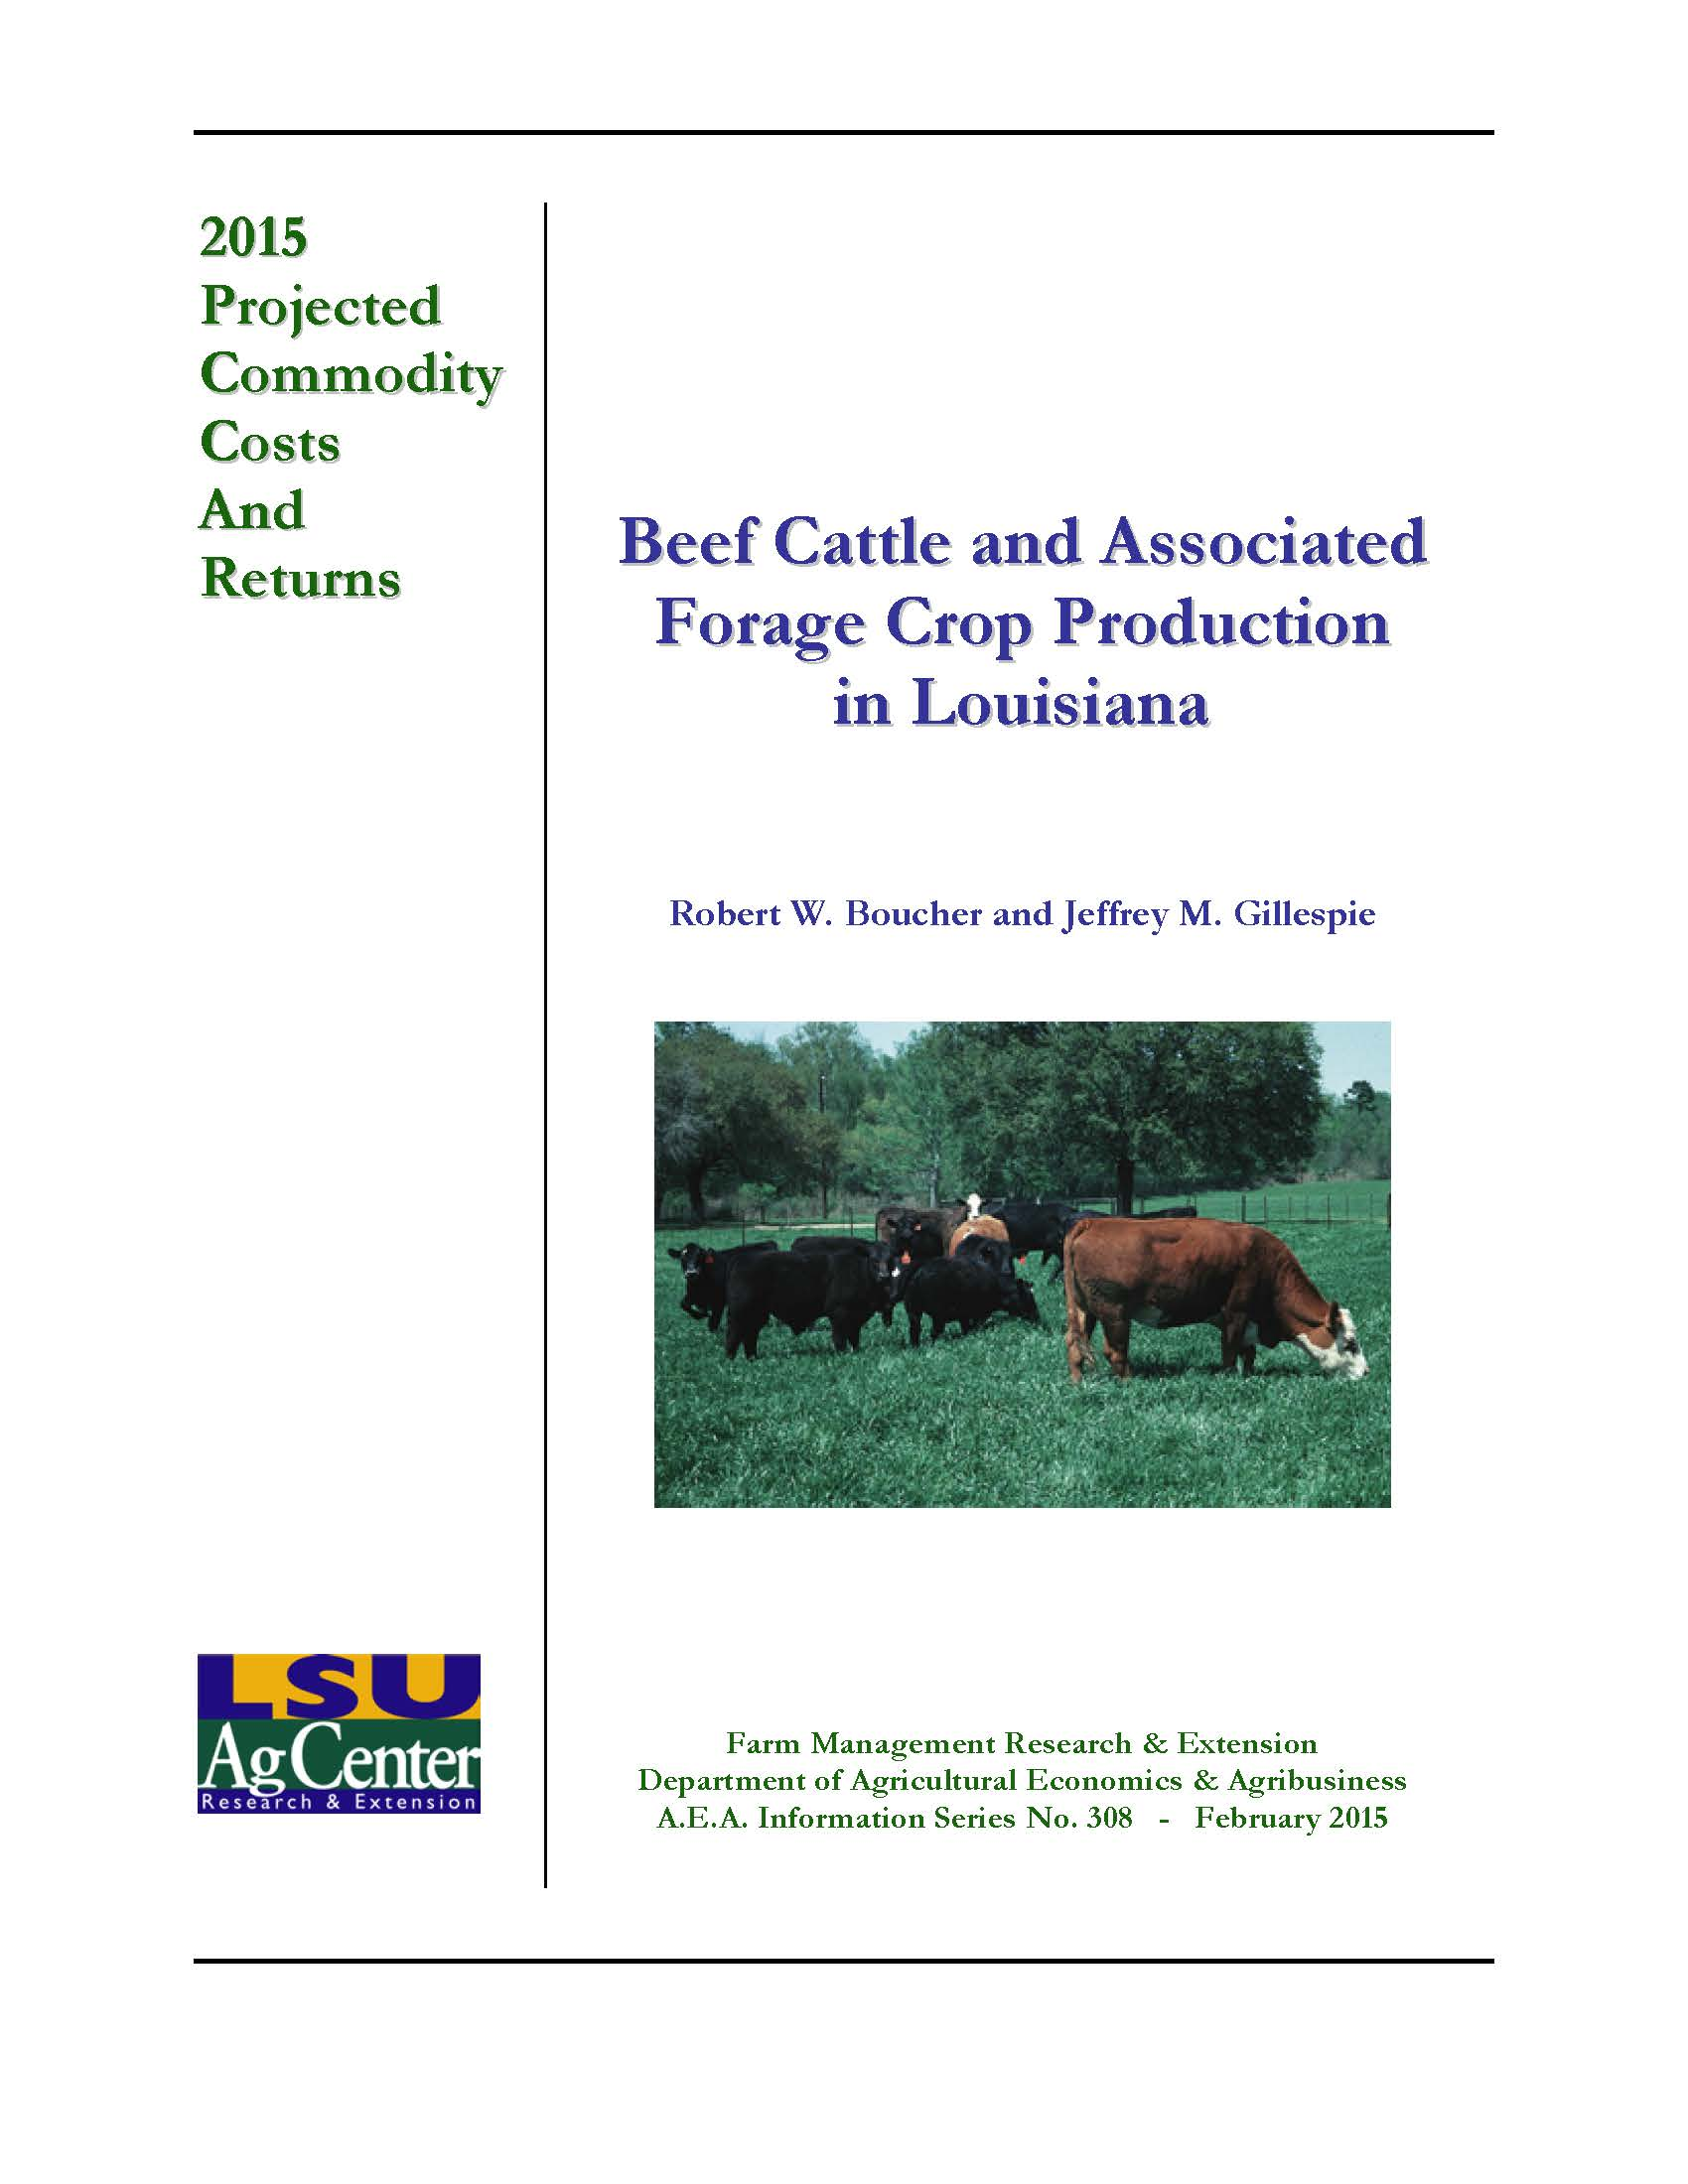 Projected Costs and Returns For Beef Cattle and Associated Forage Crops in Louisiana 2015.